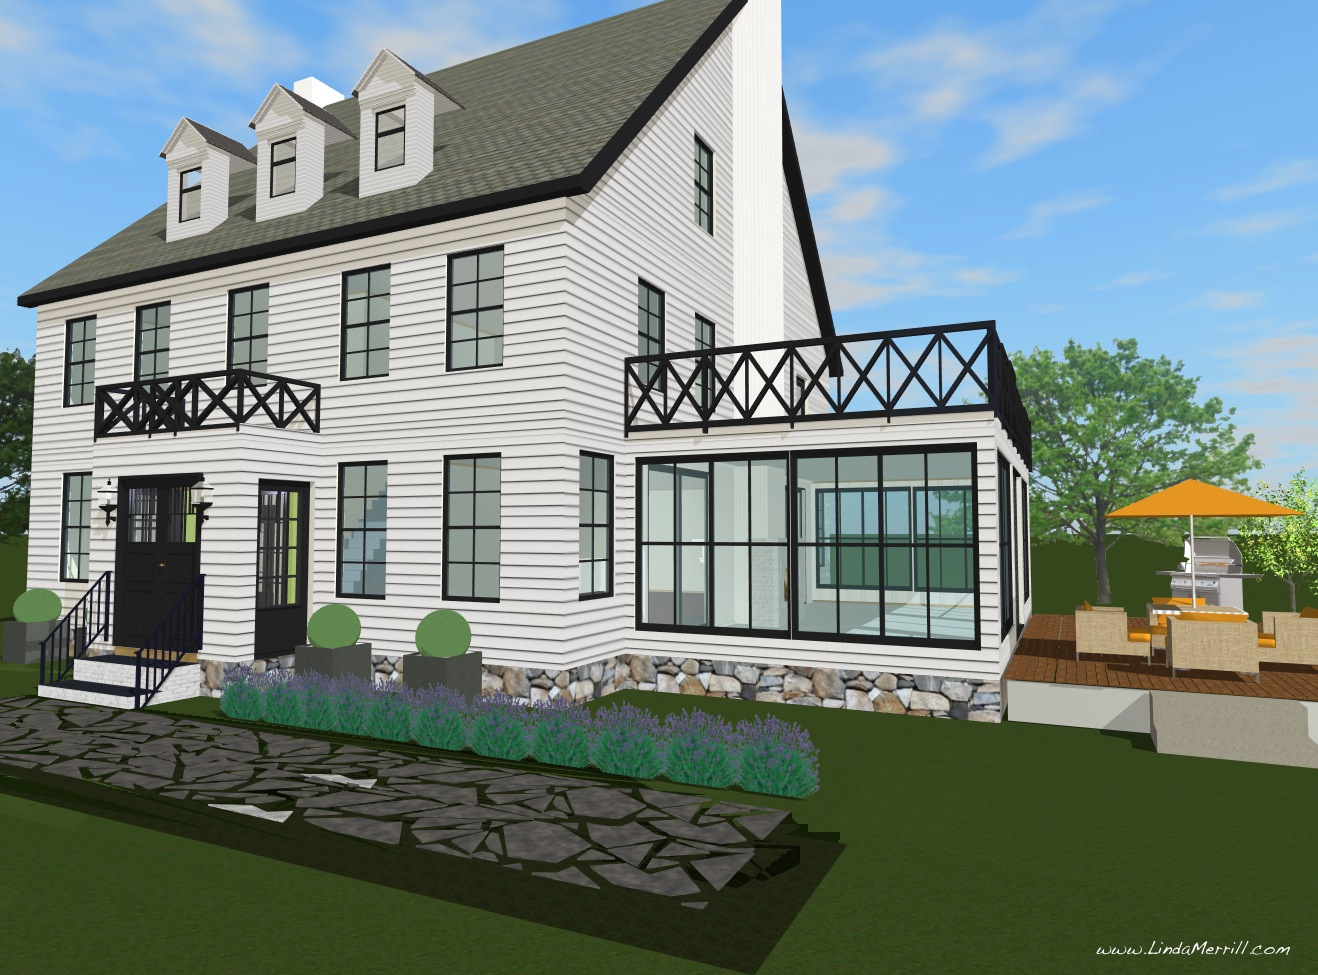 Home additions http myipamm net 3 story home plans look out decks